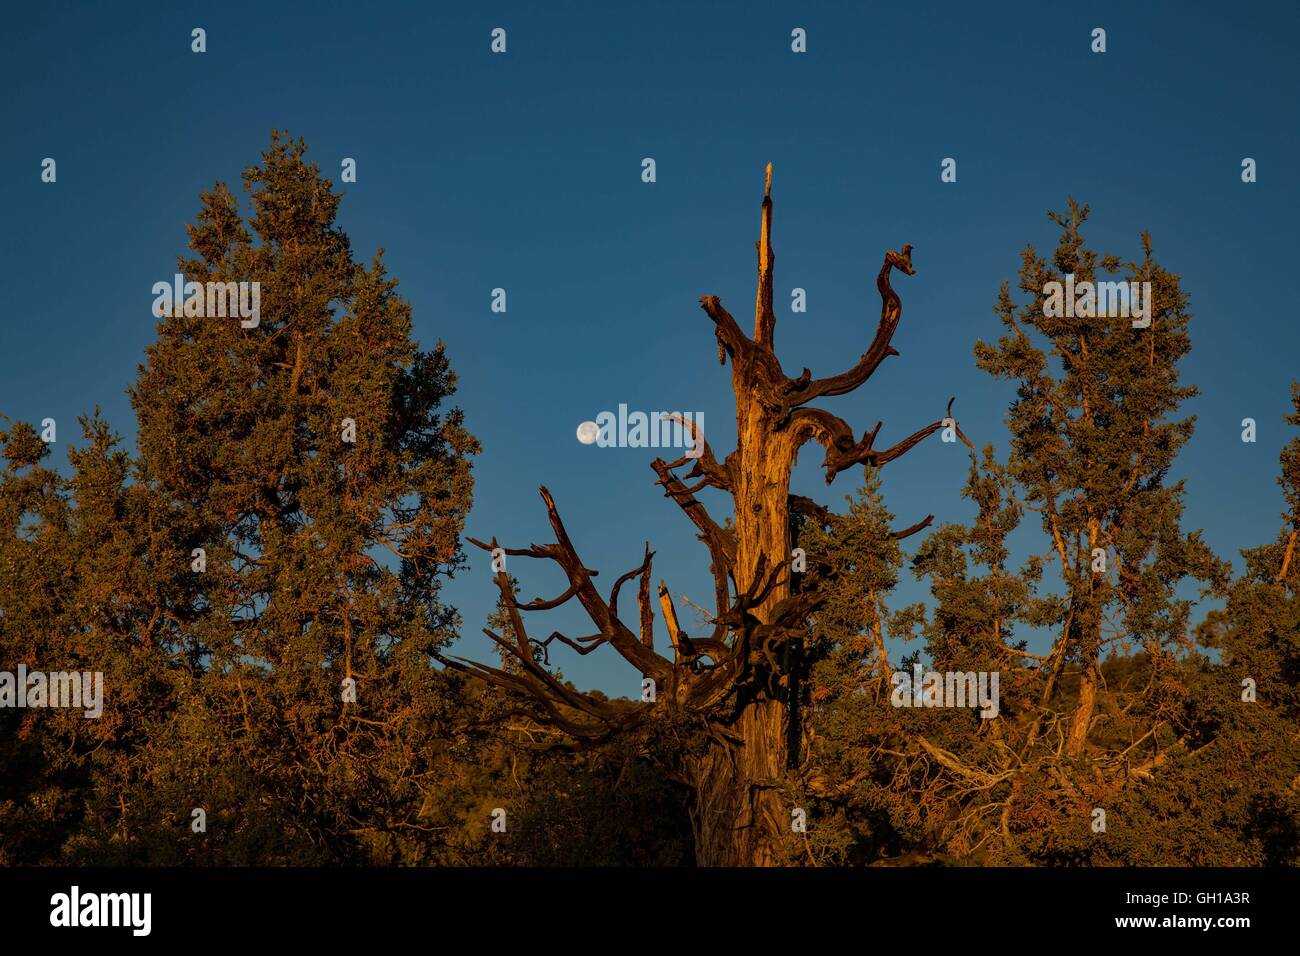 Jun 14, 2014 - White Mountains, California, U.S. - The moonsets as the sun rises over the Bristlecone Pine Forest. Stock Photo